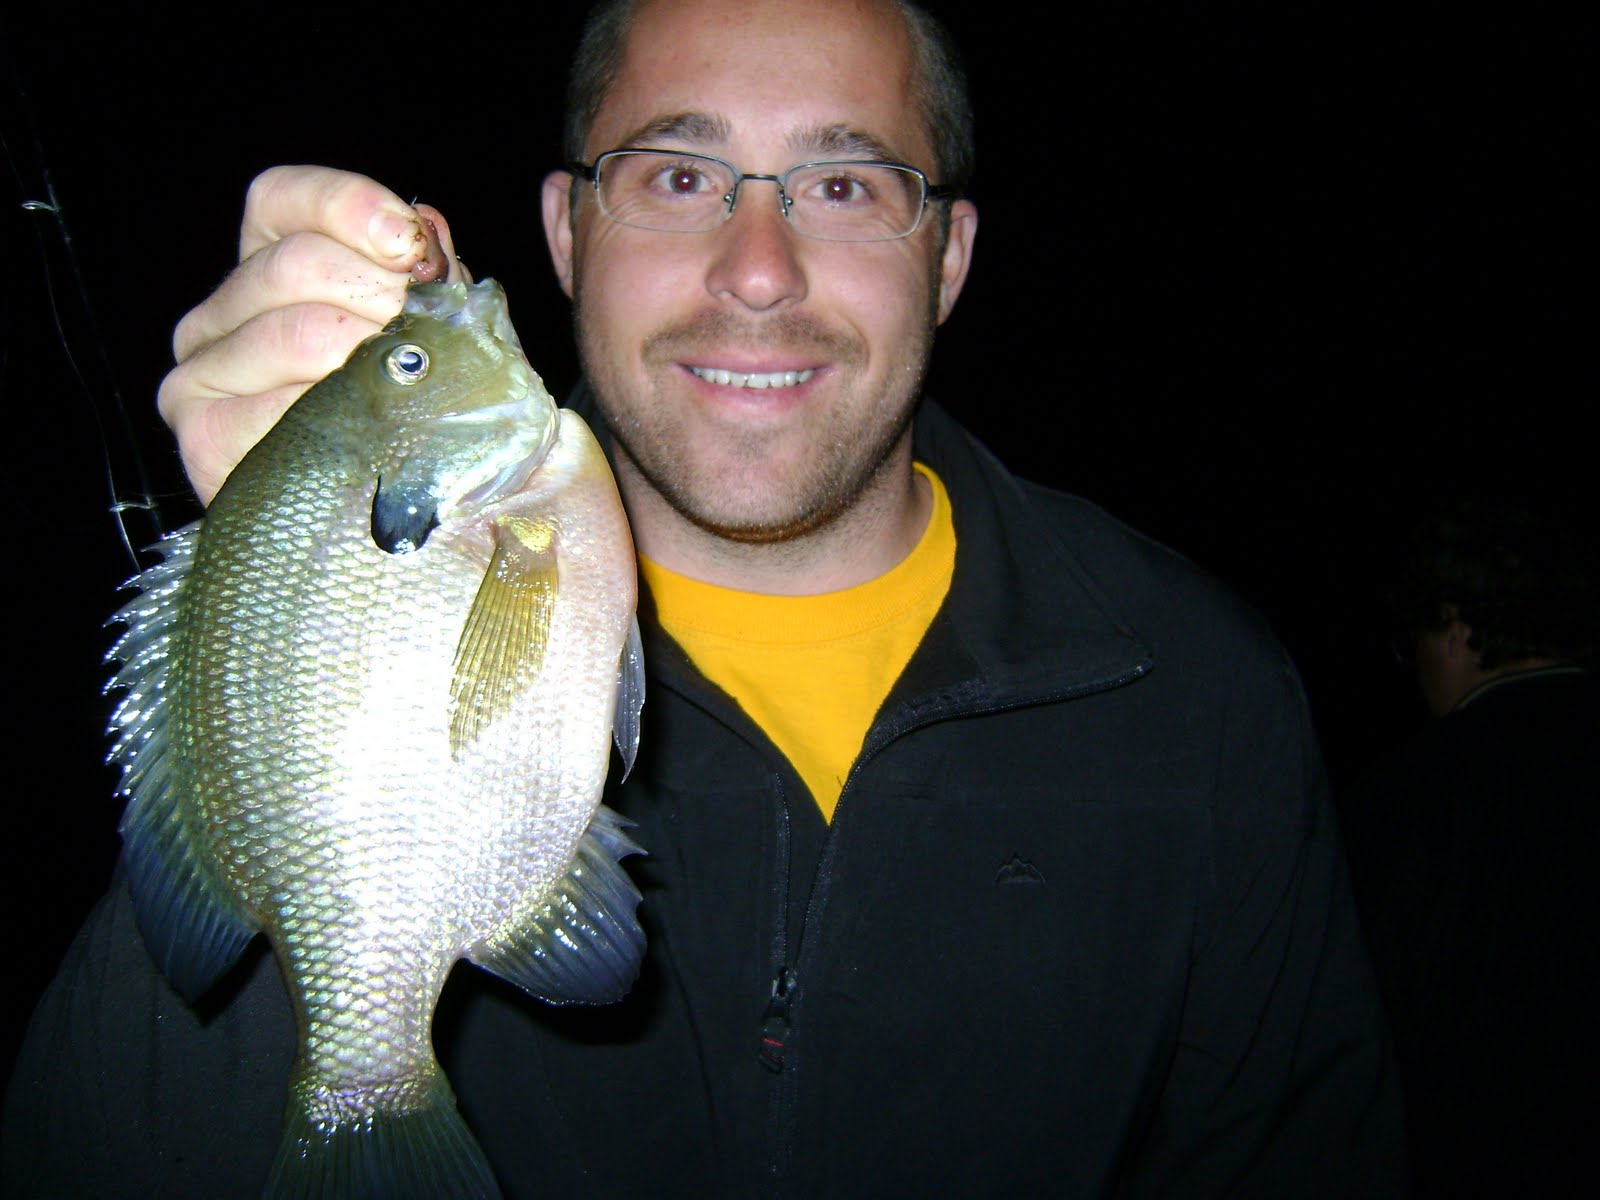 herman brothers blog: night fishing has begun!, Reel Combo